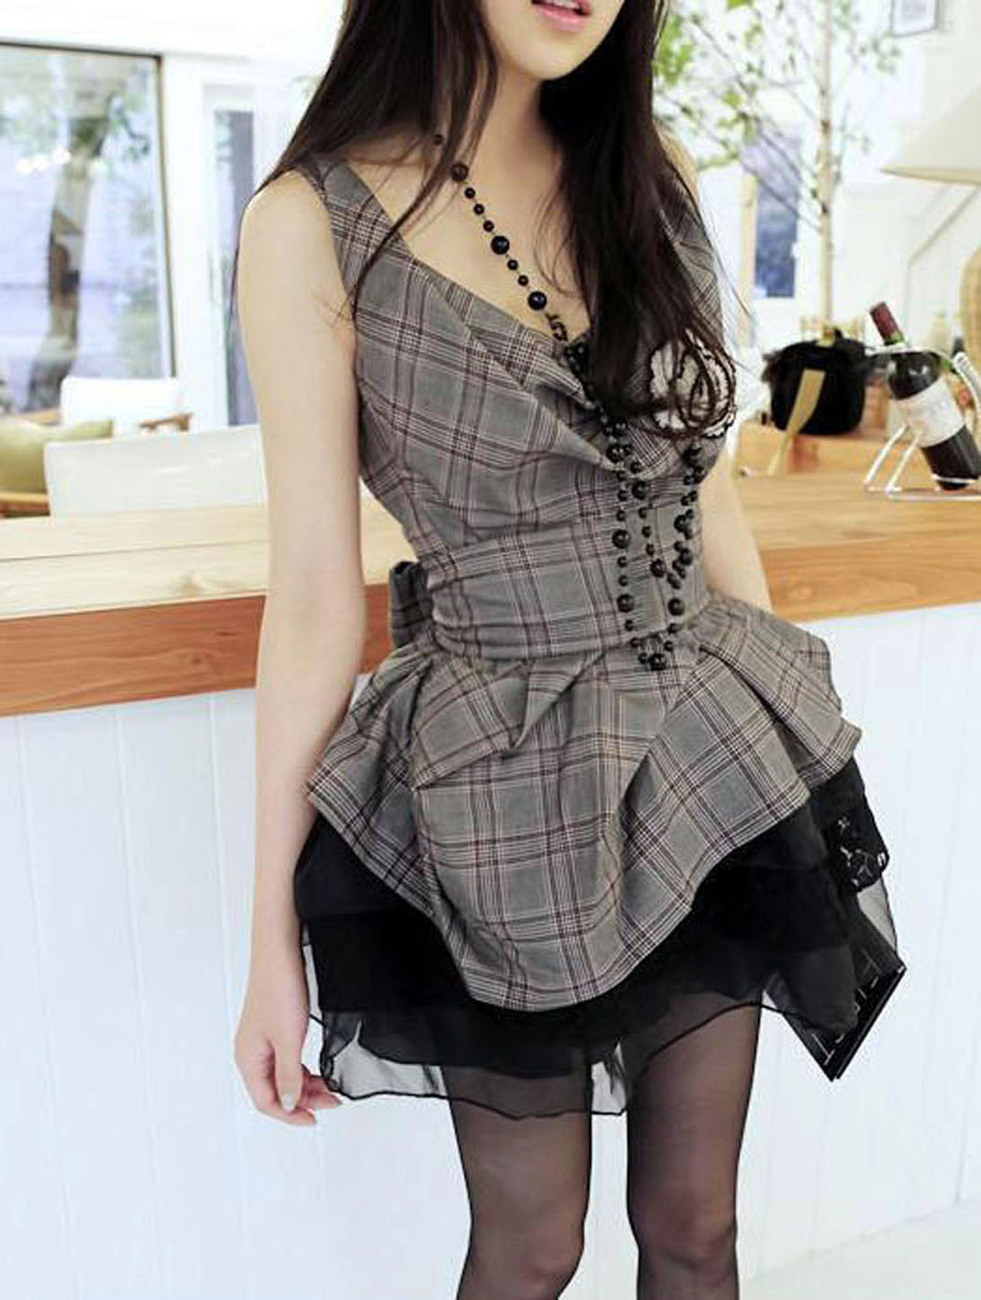 Fashionista Glam. Summer Plaids Top With Black Tutu Lace Skirt Set. Party Dress